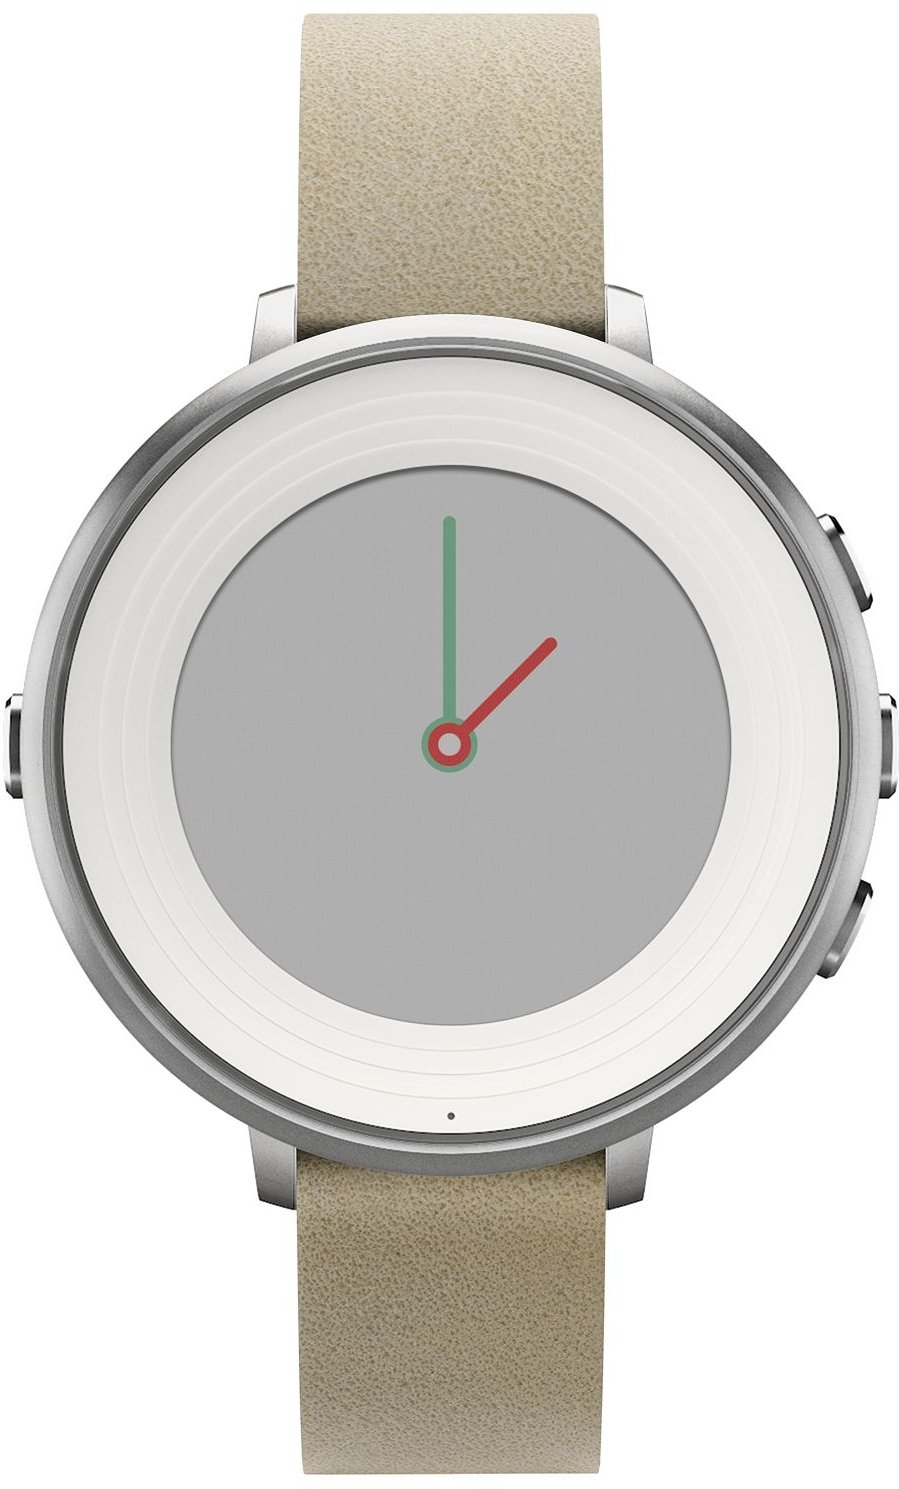 Pebble Time Around SmartWatch Montre Connectée Argent: Amazon.fr: High-tech